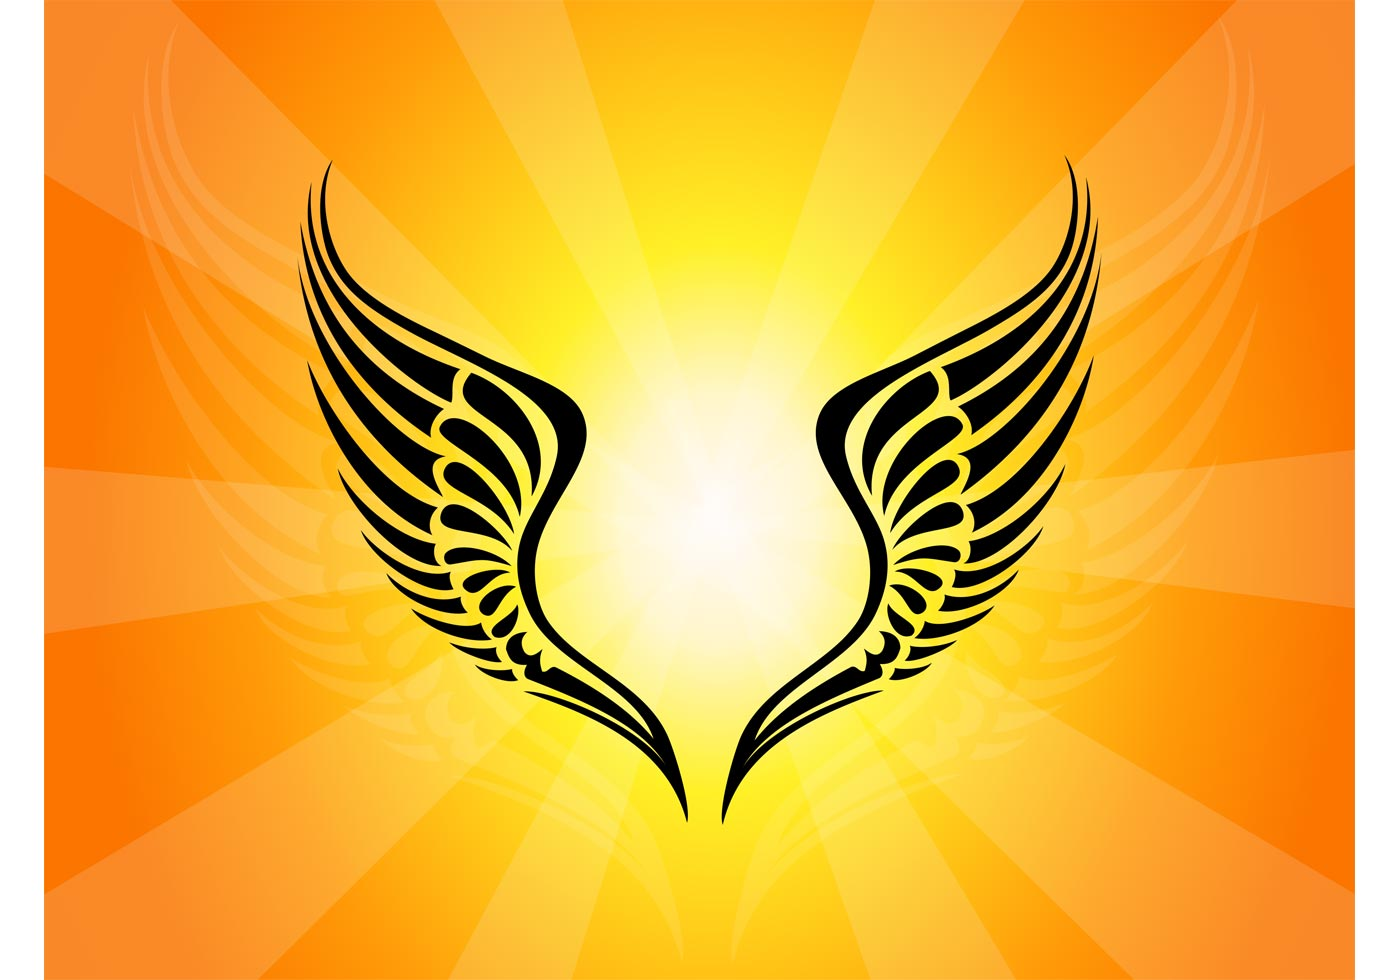 Tribal Wings Tattoo - Download Free Vector Art, Stock ...